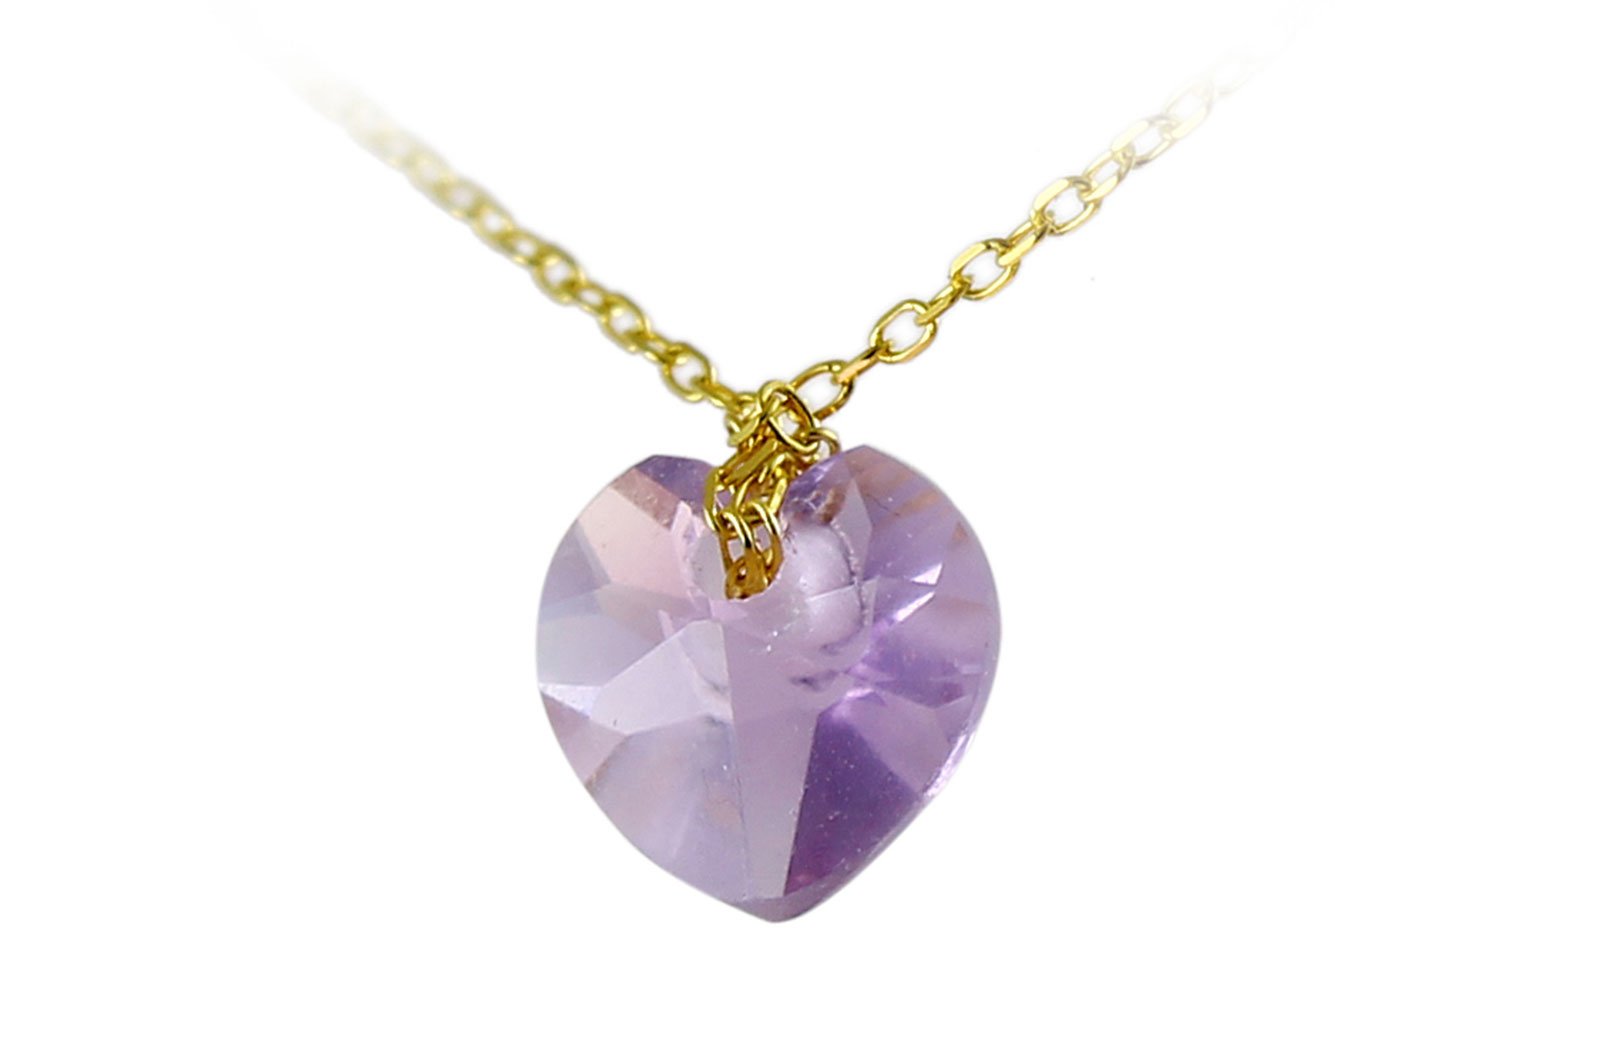 Vera Perla 10k Yellow Gold 7mm Heart Cut Genuine Amethyst Necklace